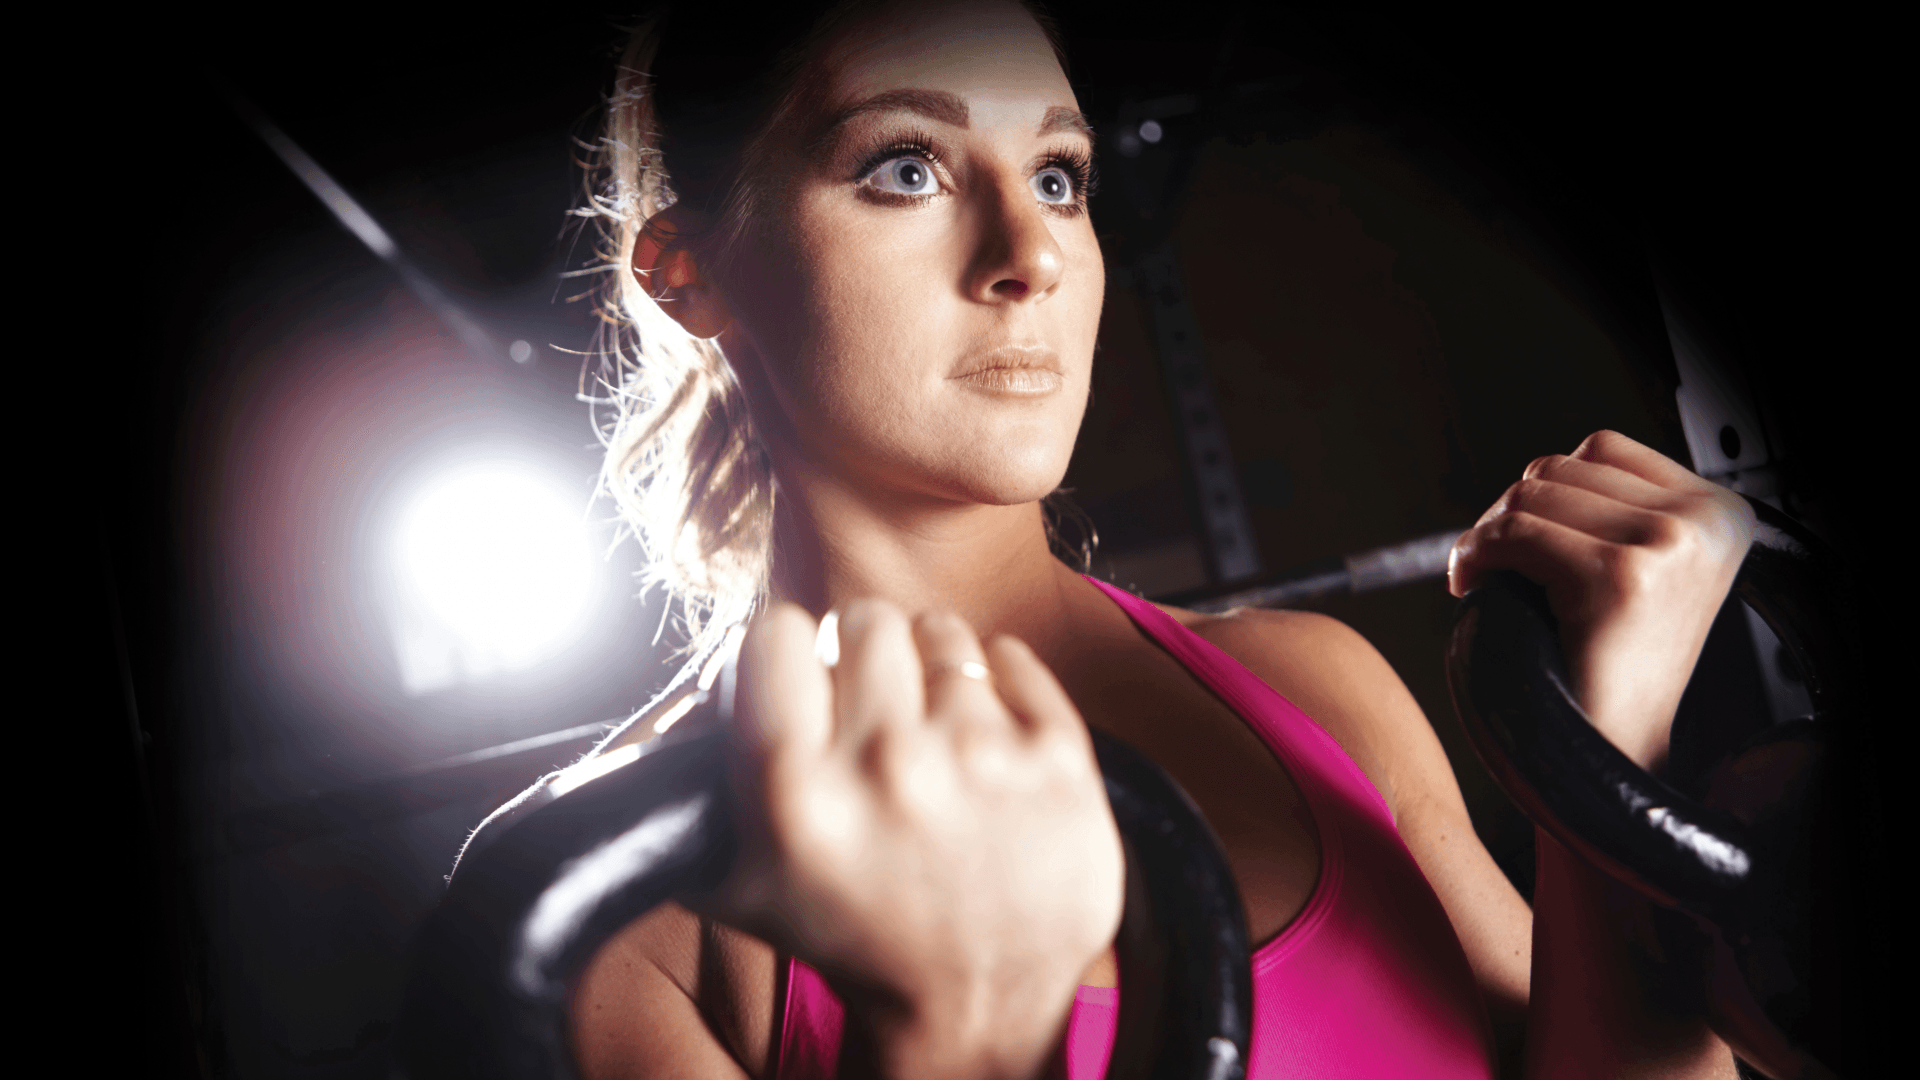 Promotional photo for the Purely Pink event focused on encouraging women to add a strength training program to their regular workouts.